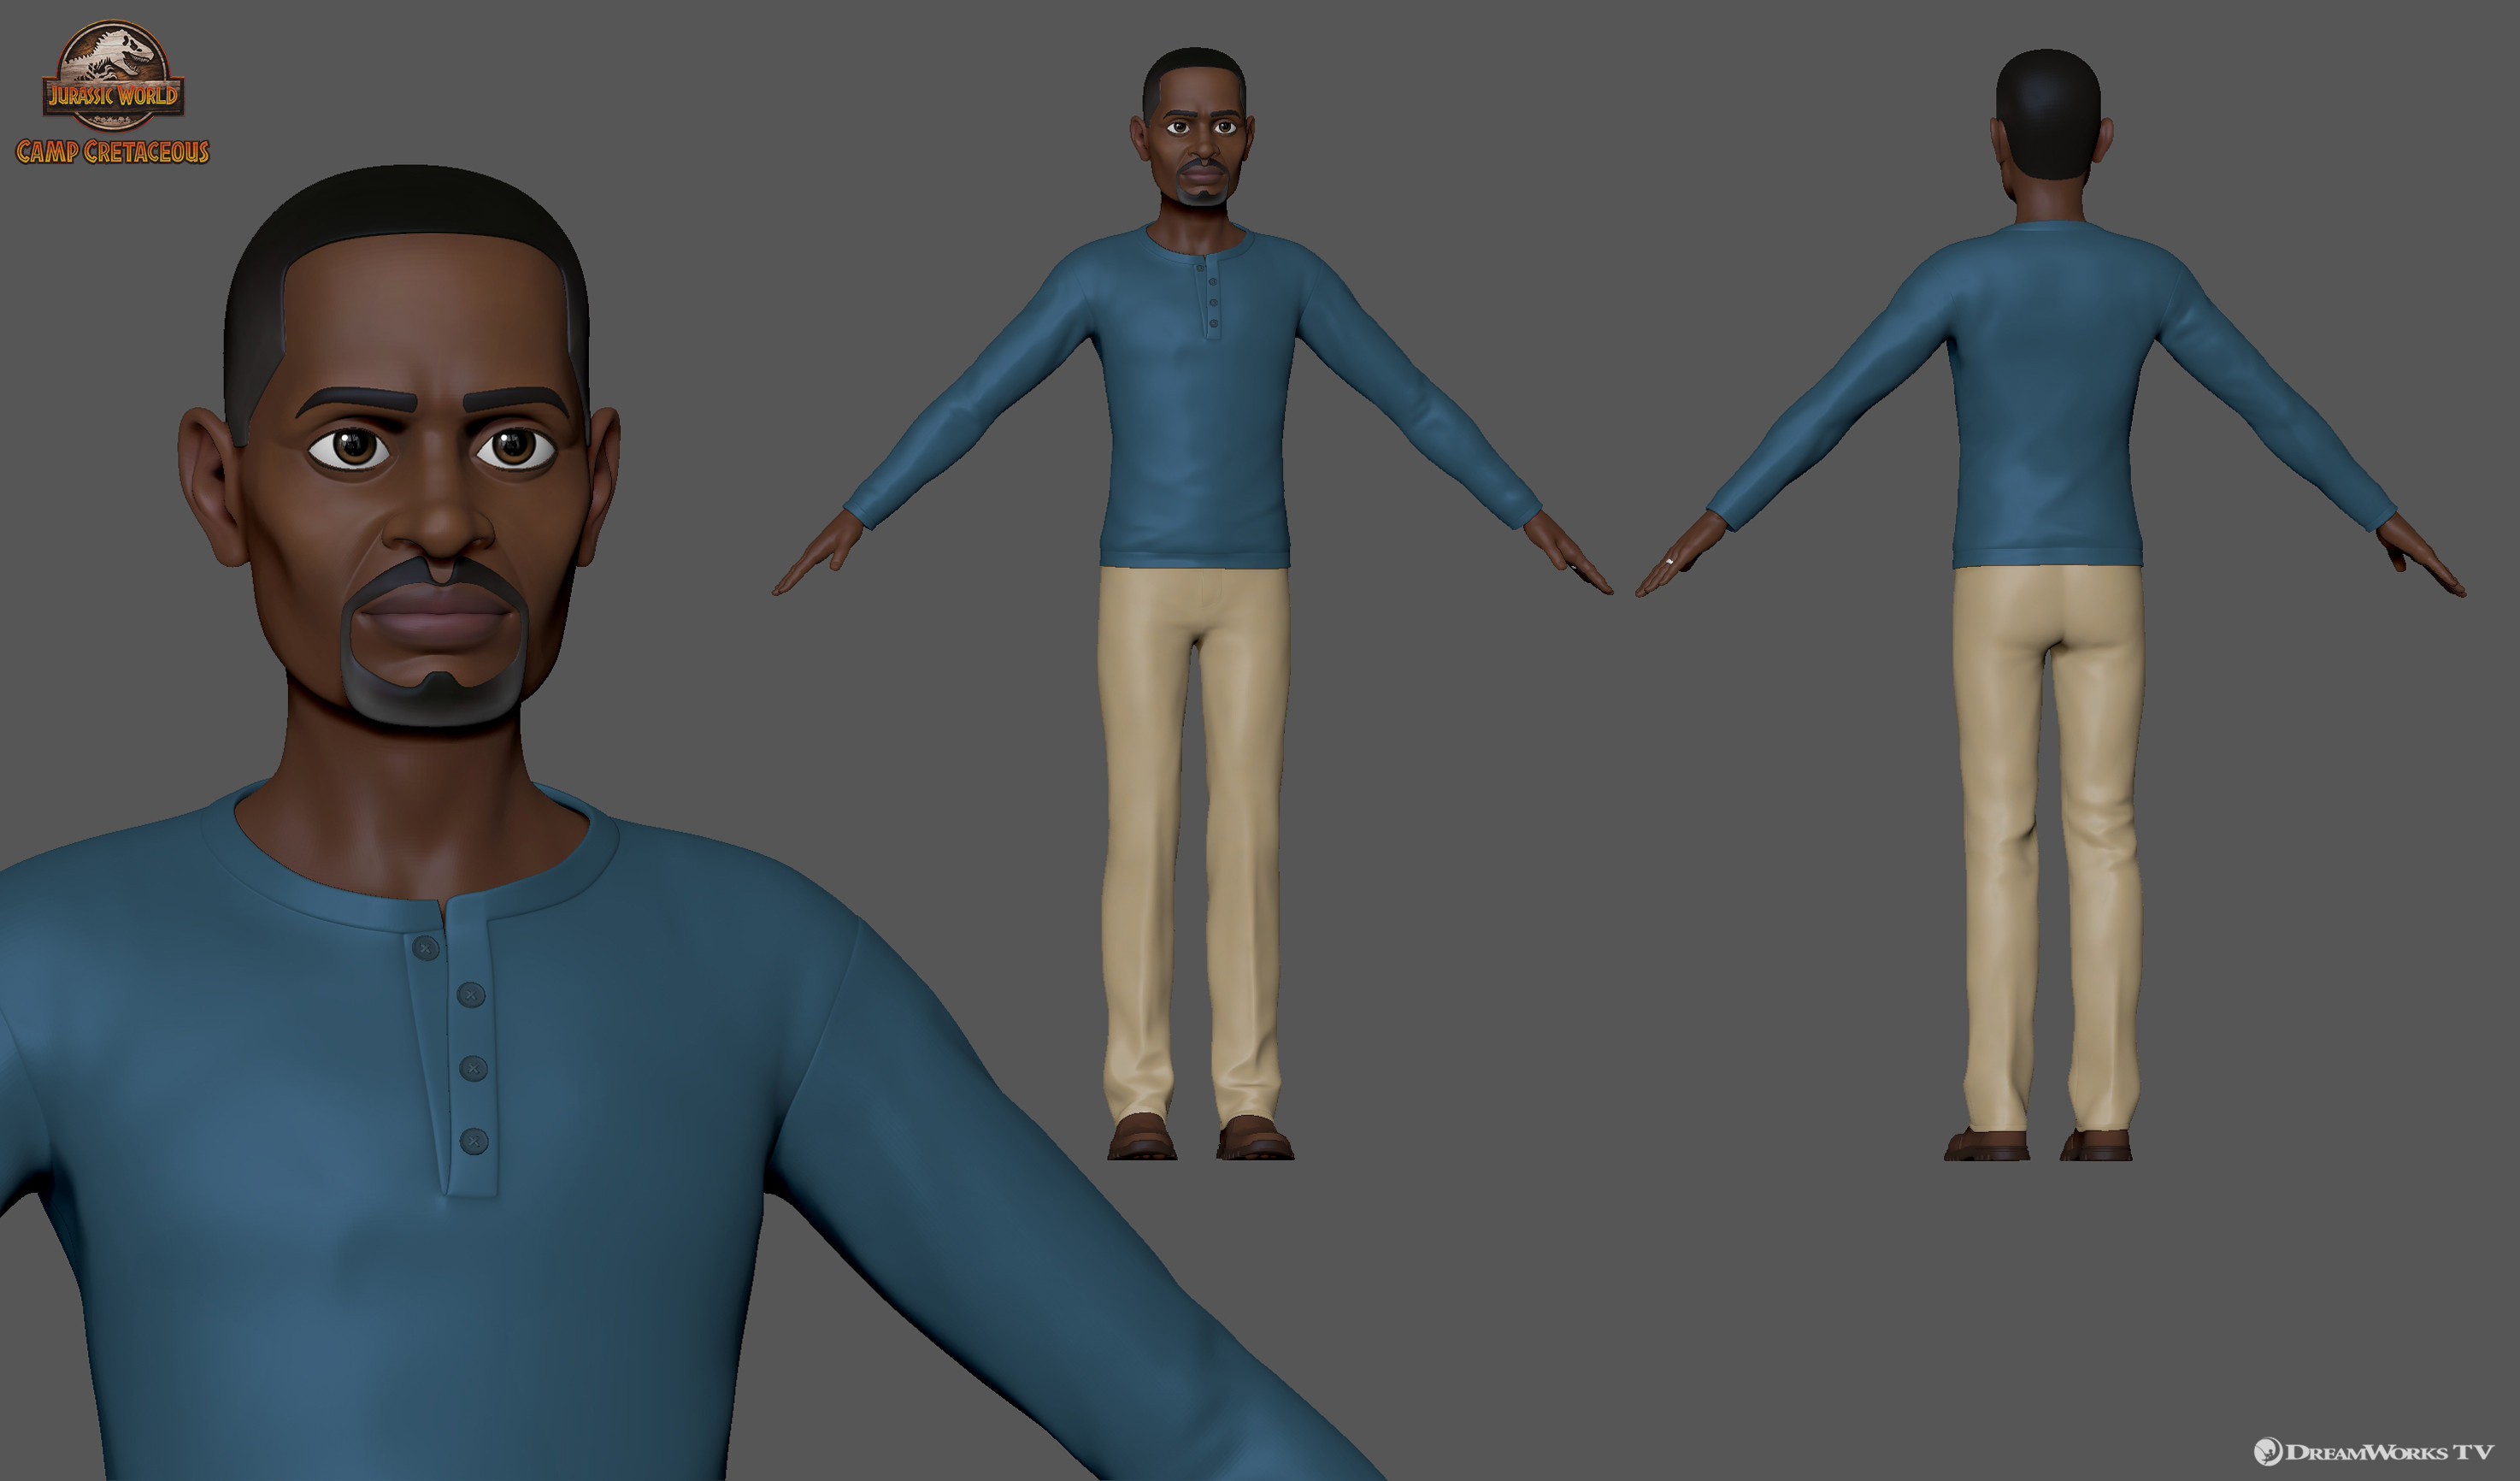 Darius' Dad - Responsible for facial and body sculpting in collaboration with the DWTV modeling team and outsource supervision.